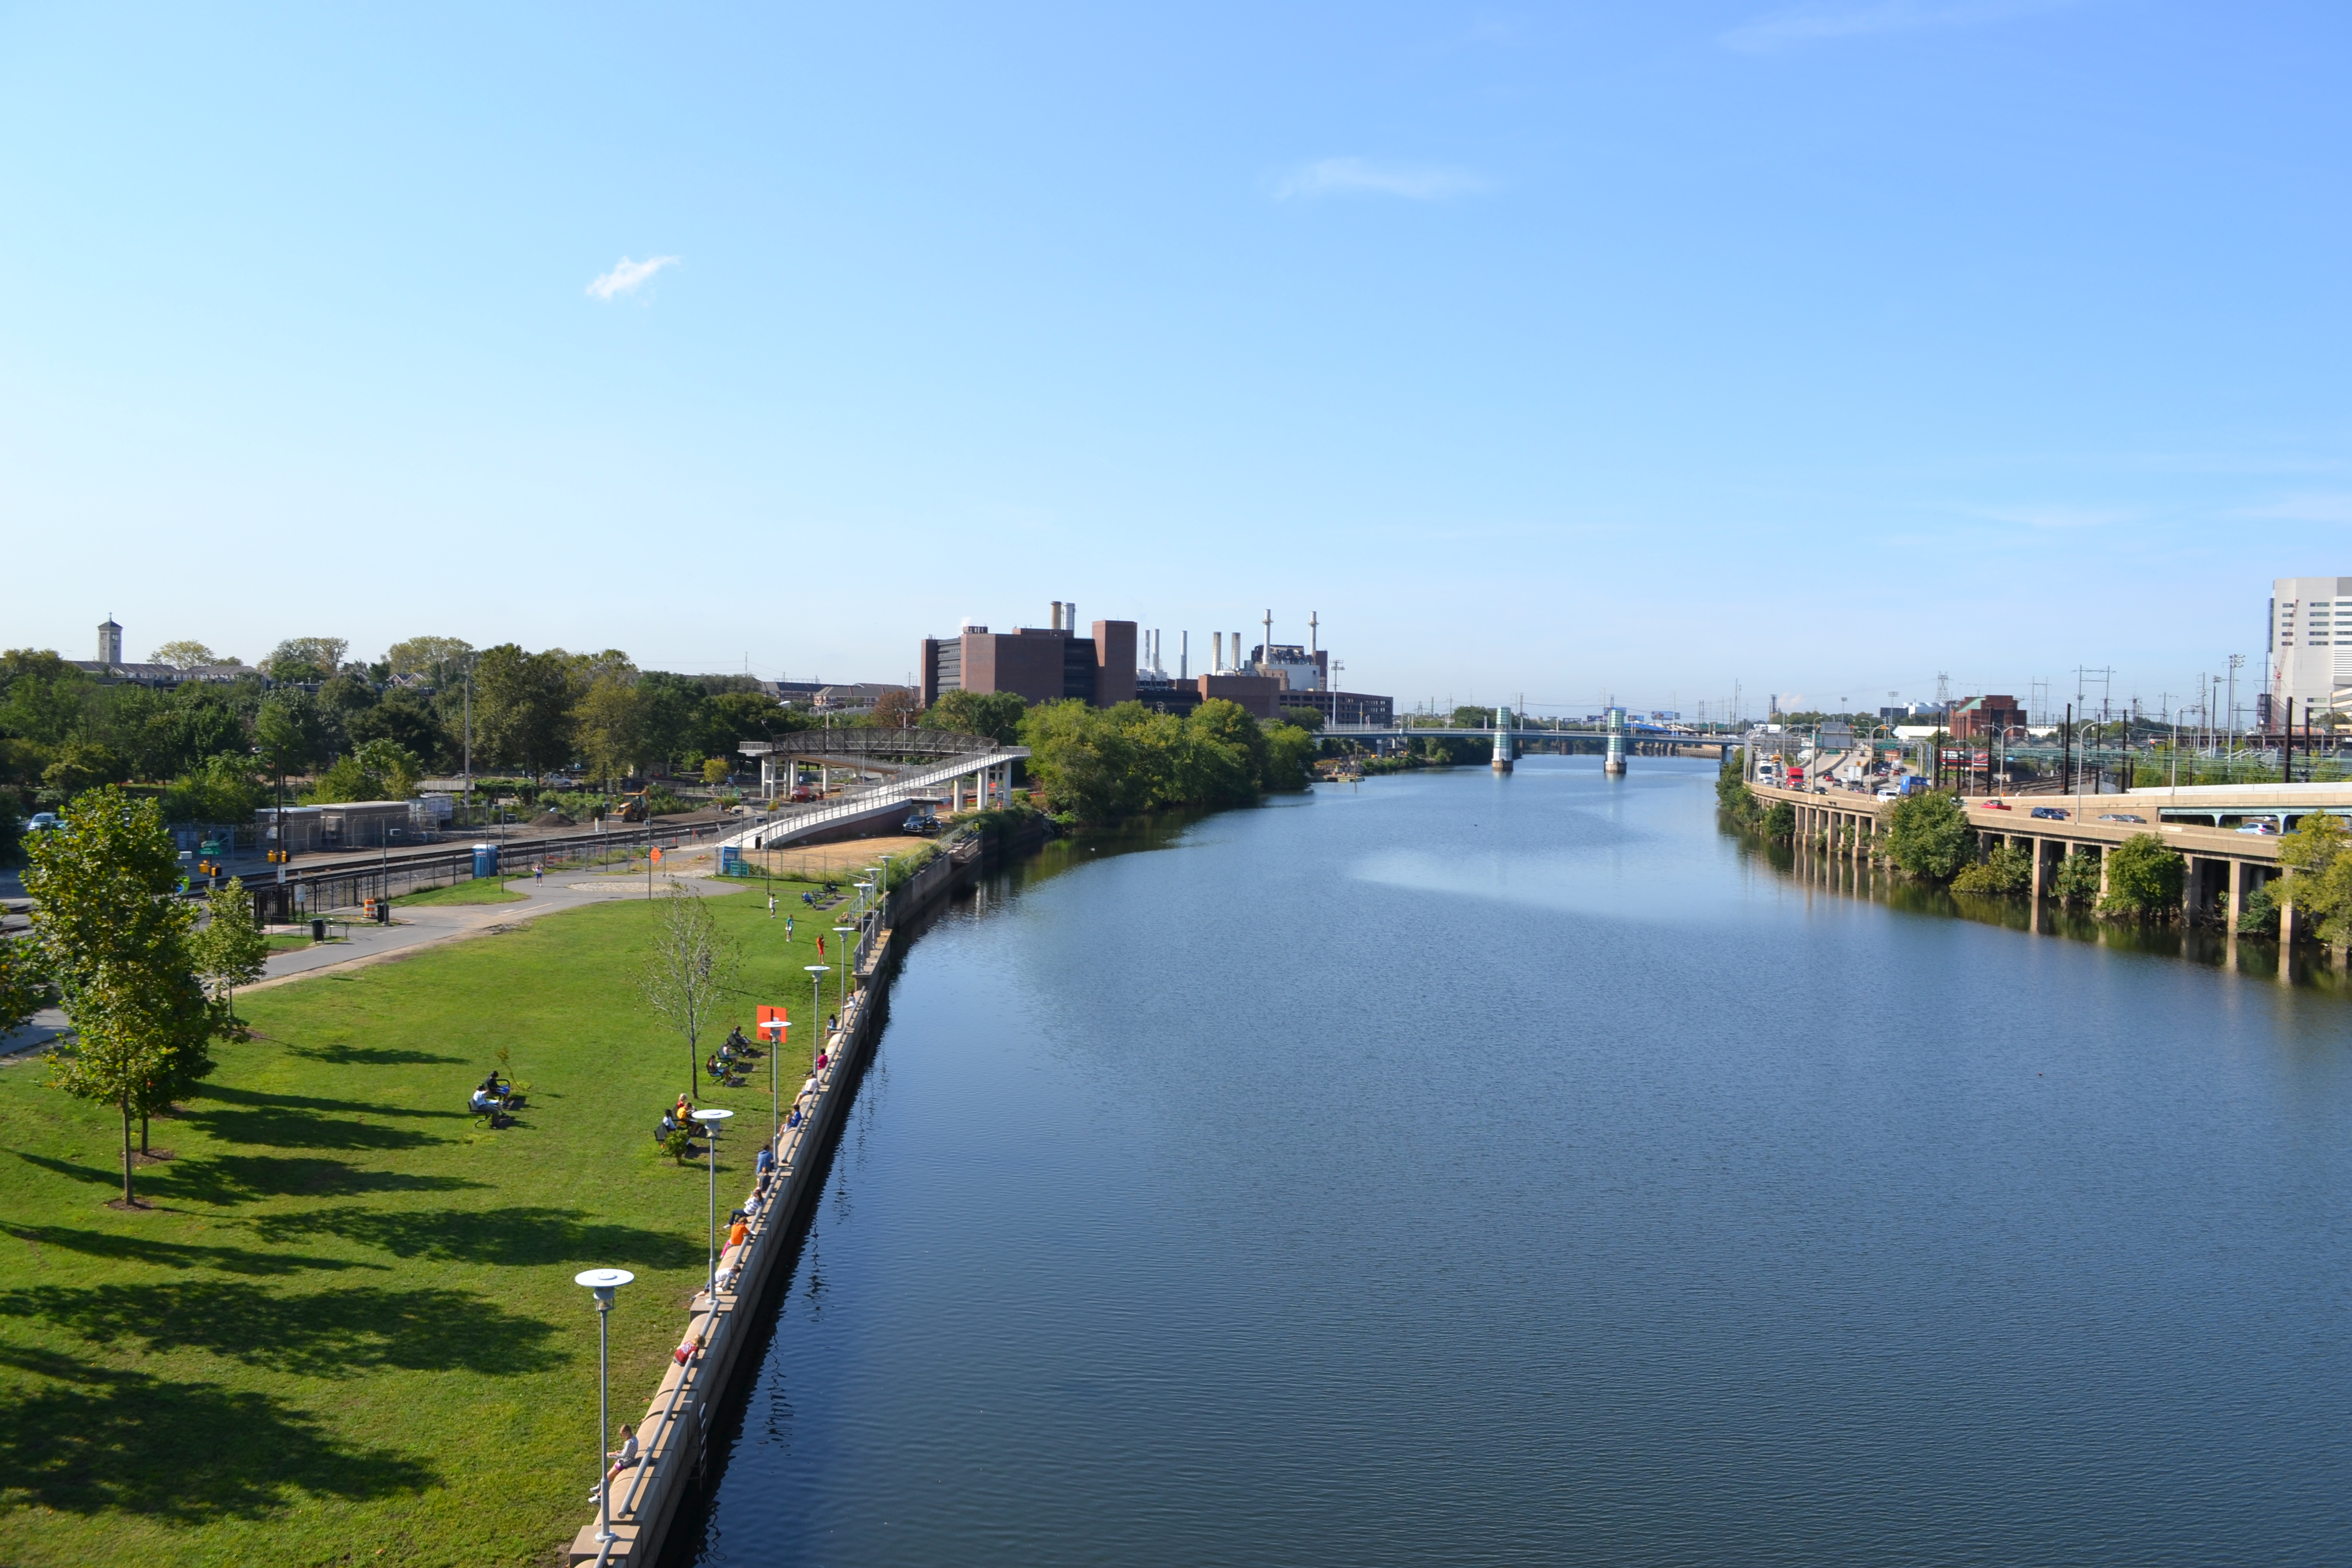 Work along the Schuylkill River will make an important section of the banks more accessible